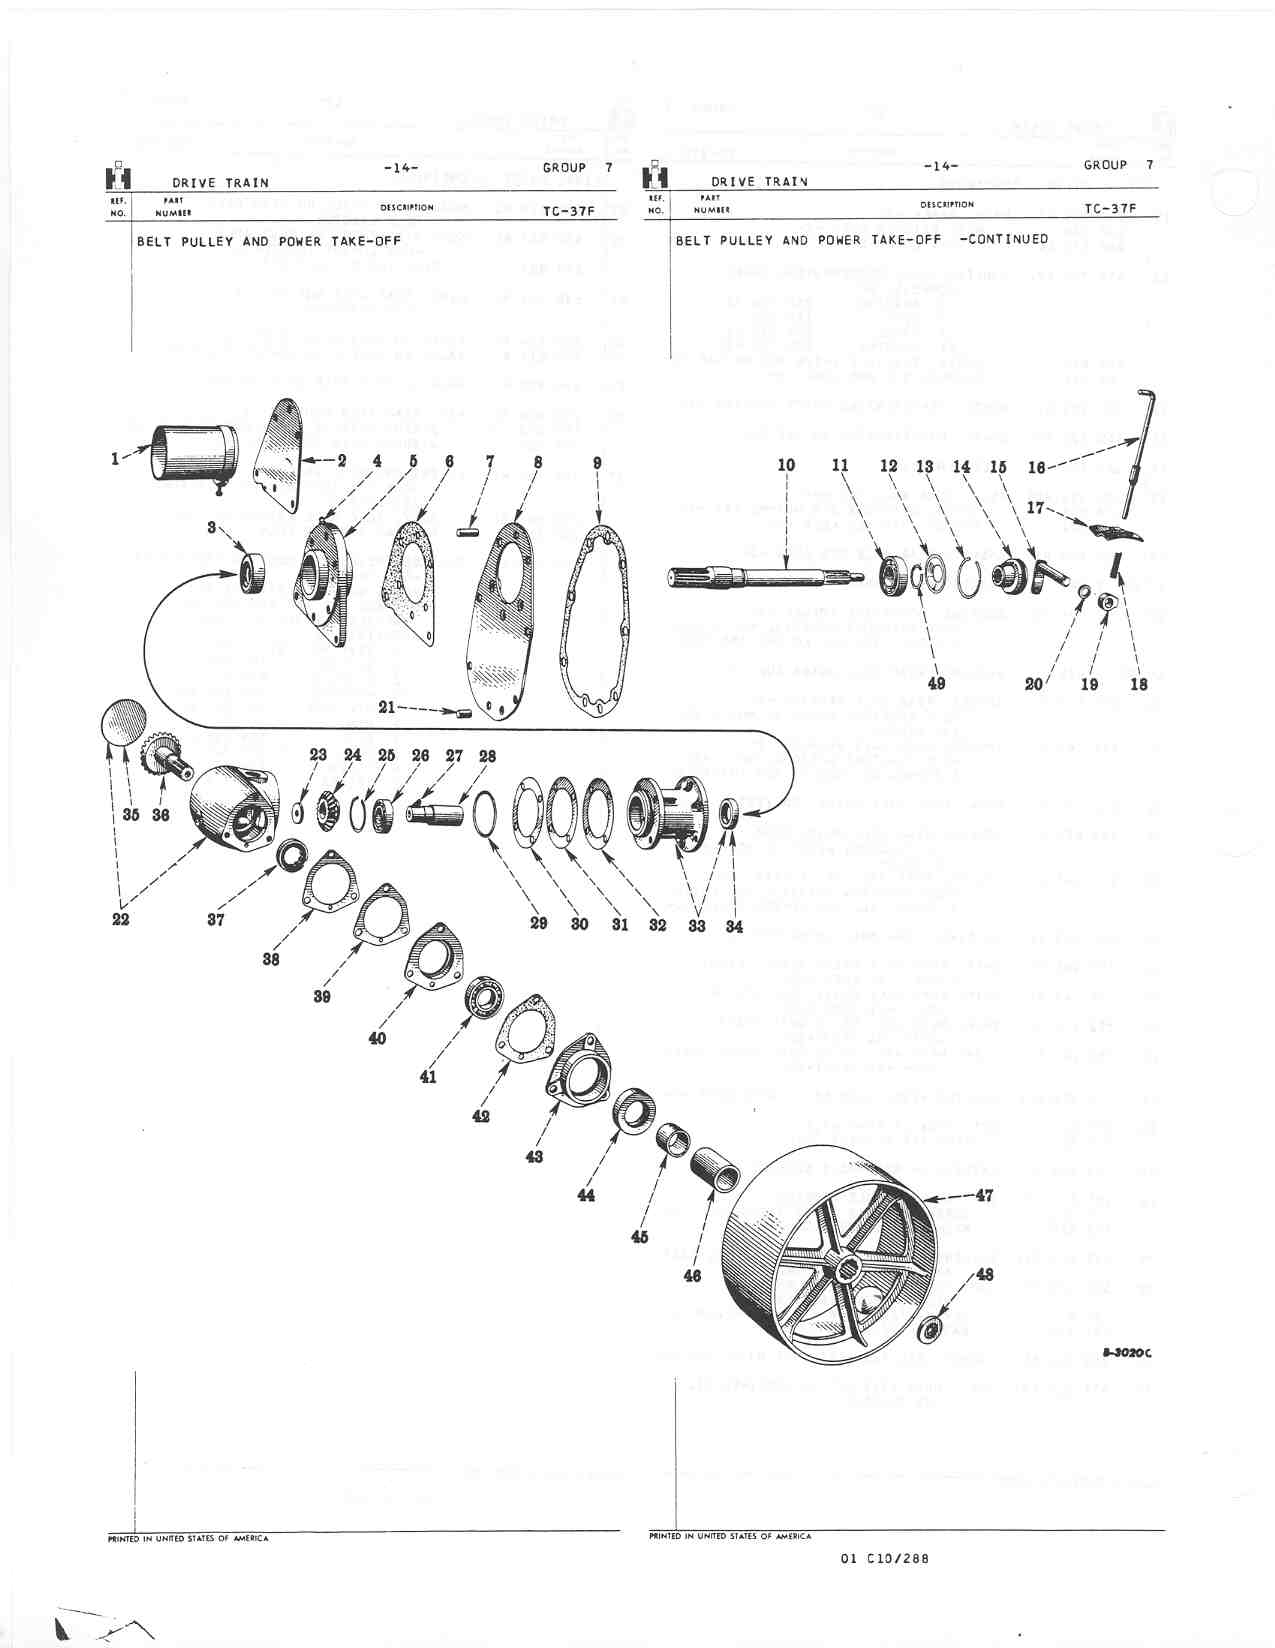 farmall 140 parts diagram steering group 07 drive train  group 07 drive train